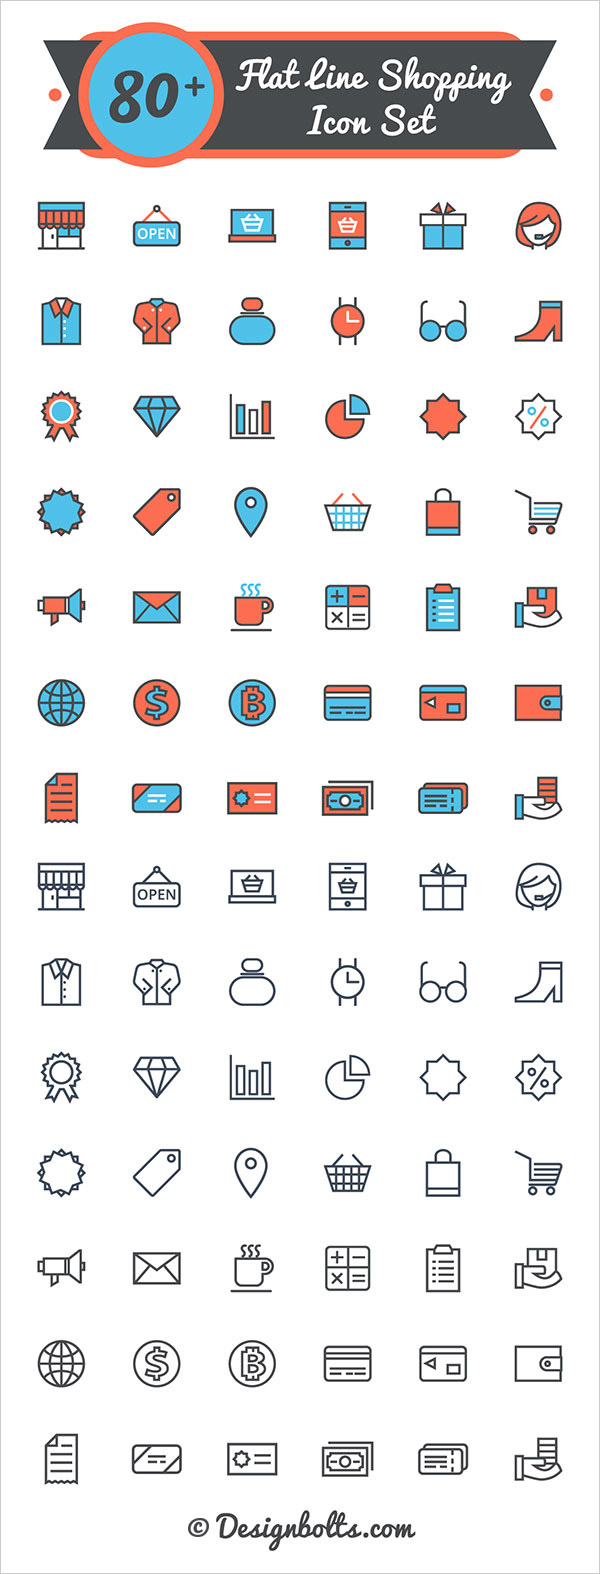 Free-flat-line-shopping-icon-set-2